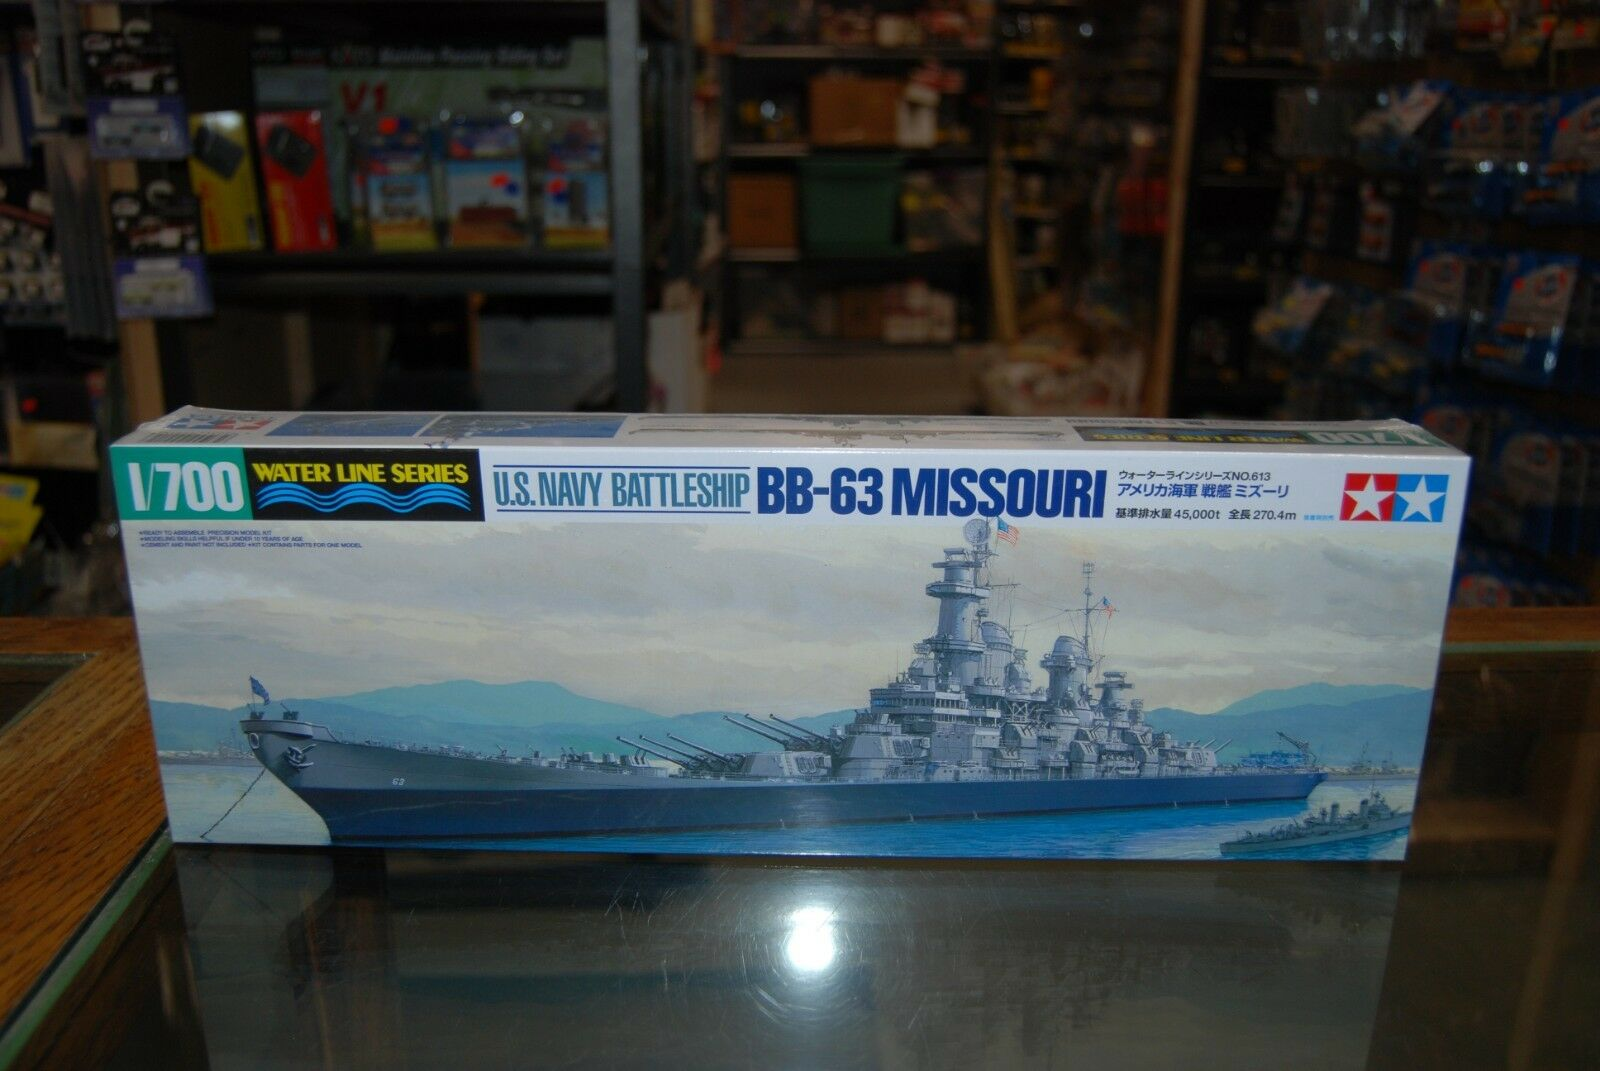 Tamiya 1 700 kit 31613  U.S. Navy Battleship BB-63 Missouri